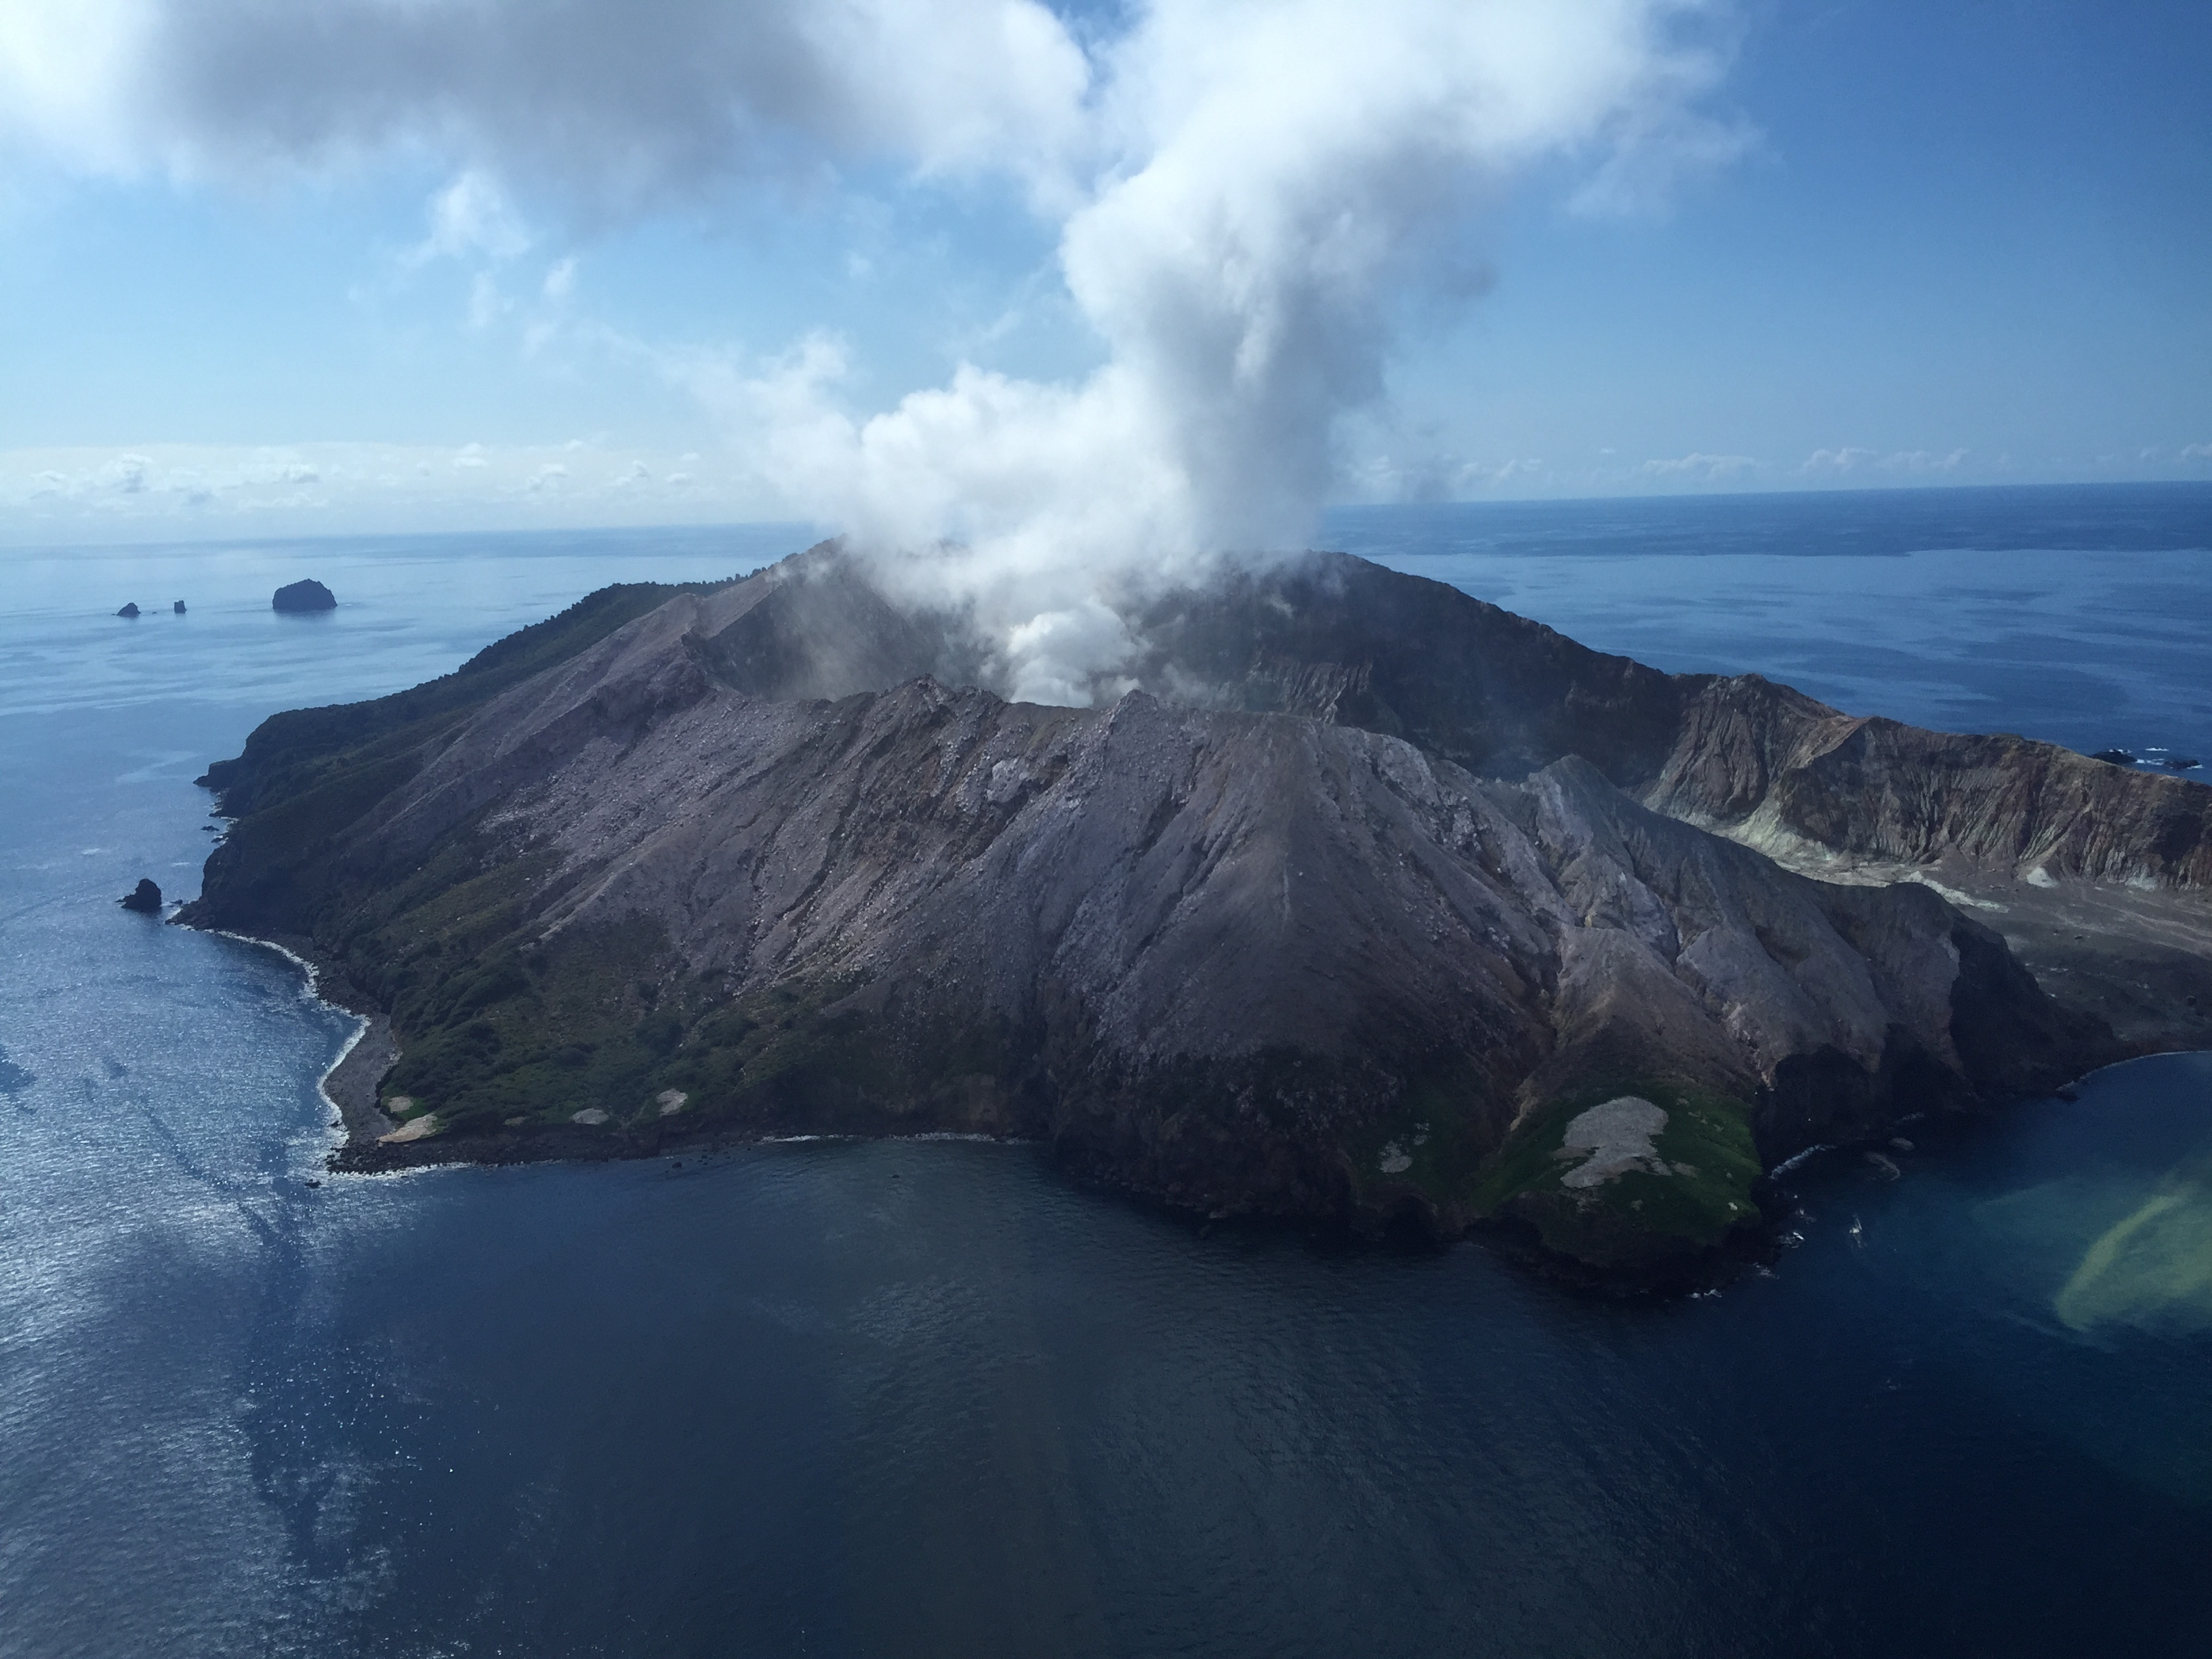 No Survivors On New Zealand Island After Volcano Eruption, Police Say